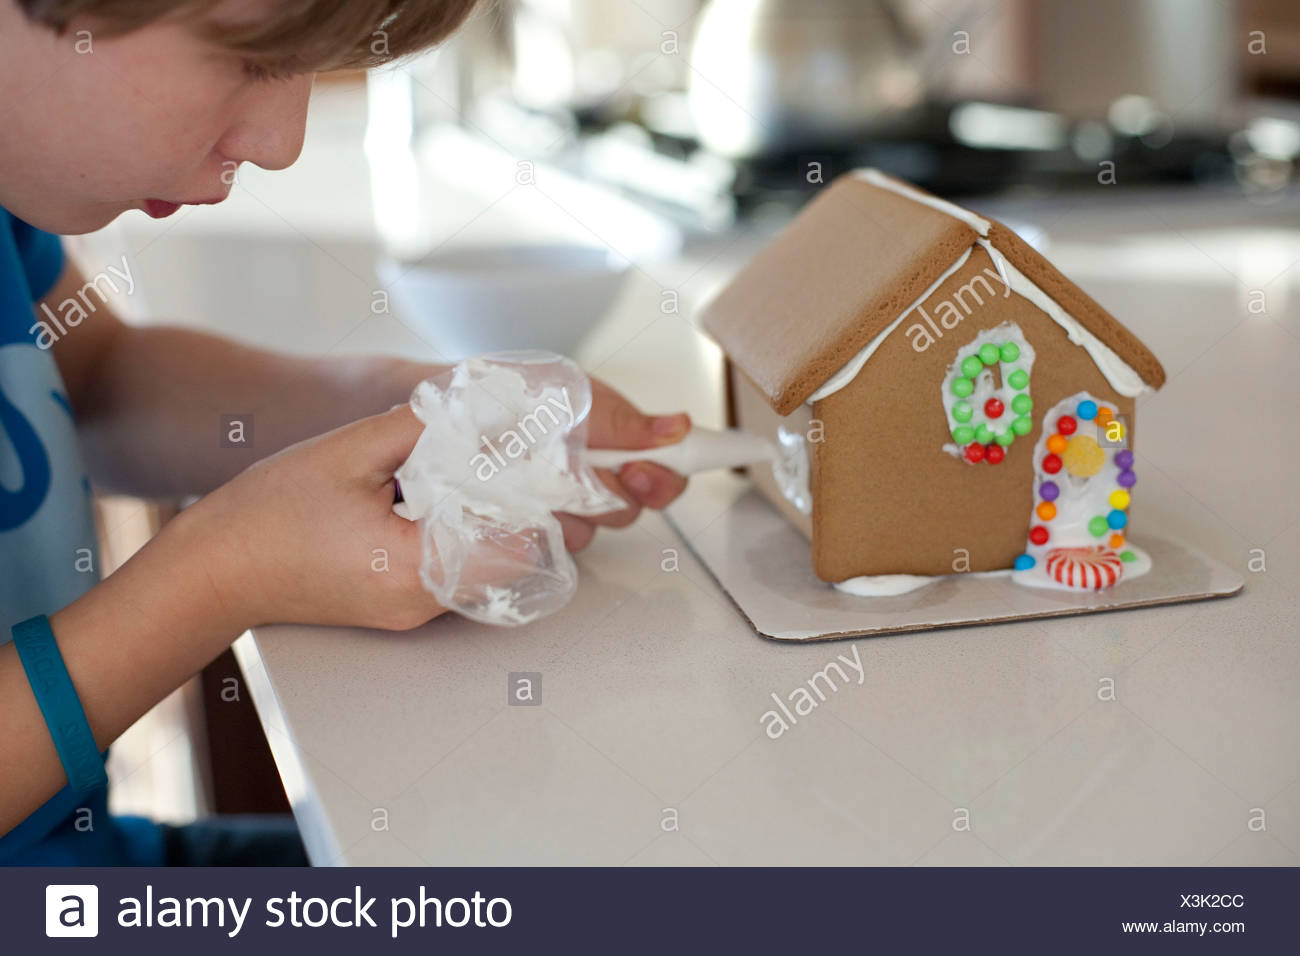 Boy decorating gingerbread house - Stock Image